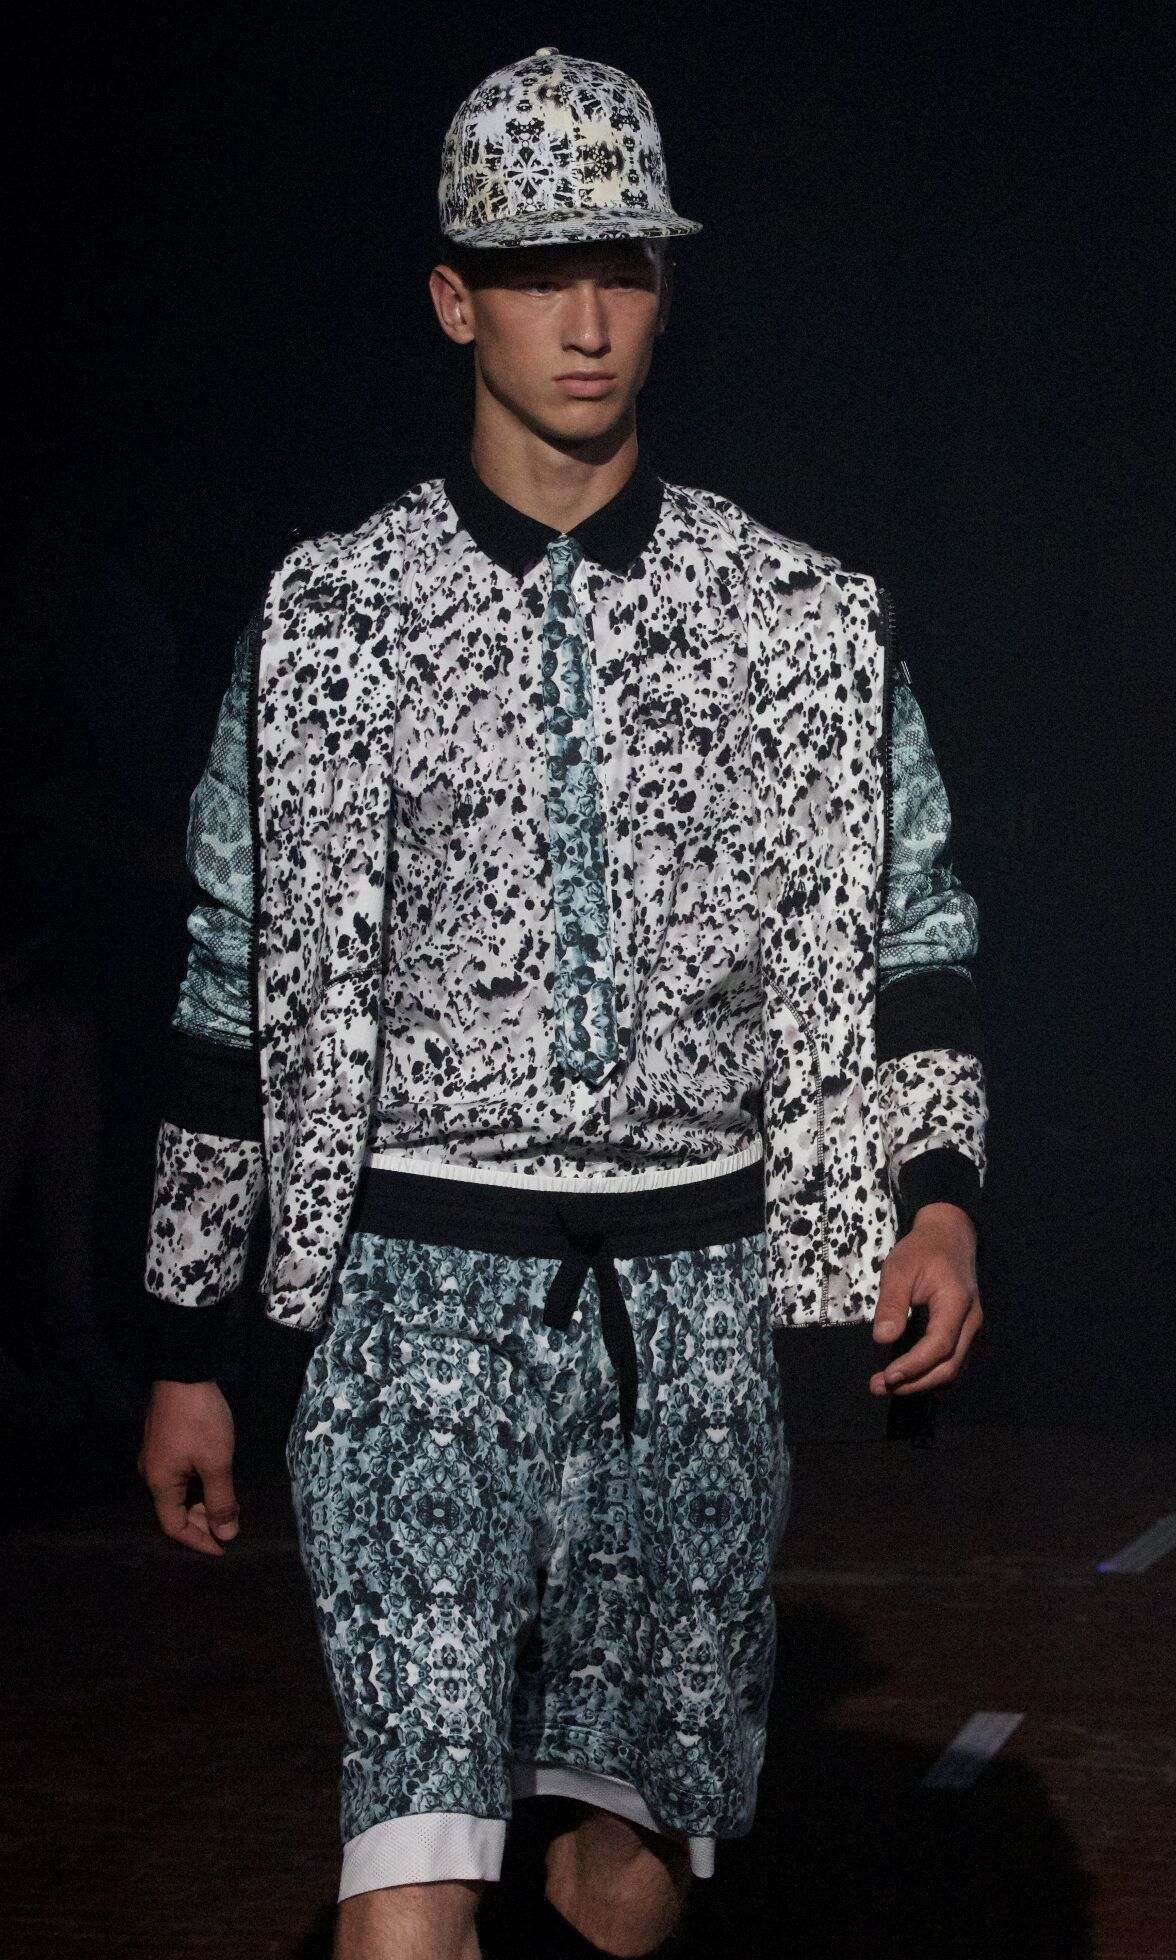 Performace Onitsuka Tiger X Andrea Pompilio Spring Summer 2014 Collection Pitti Immagine Uomo Florence